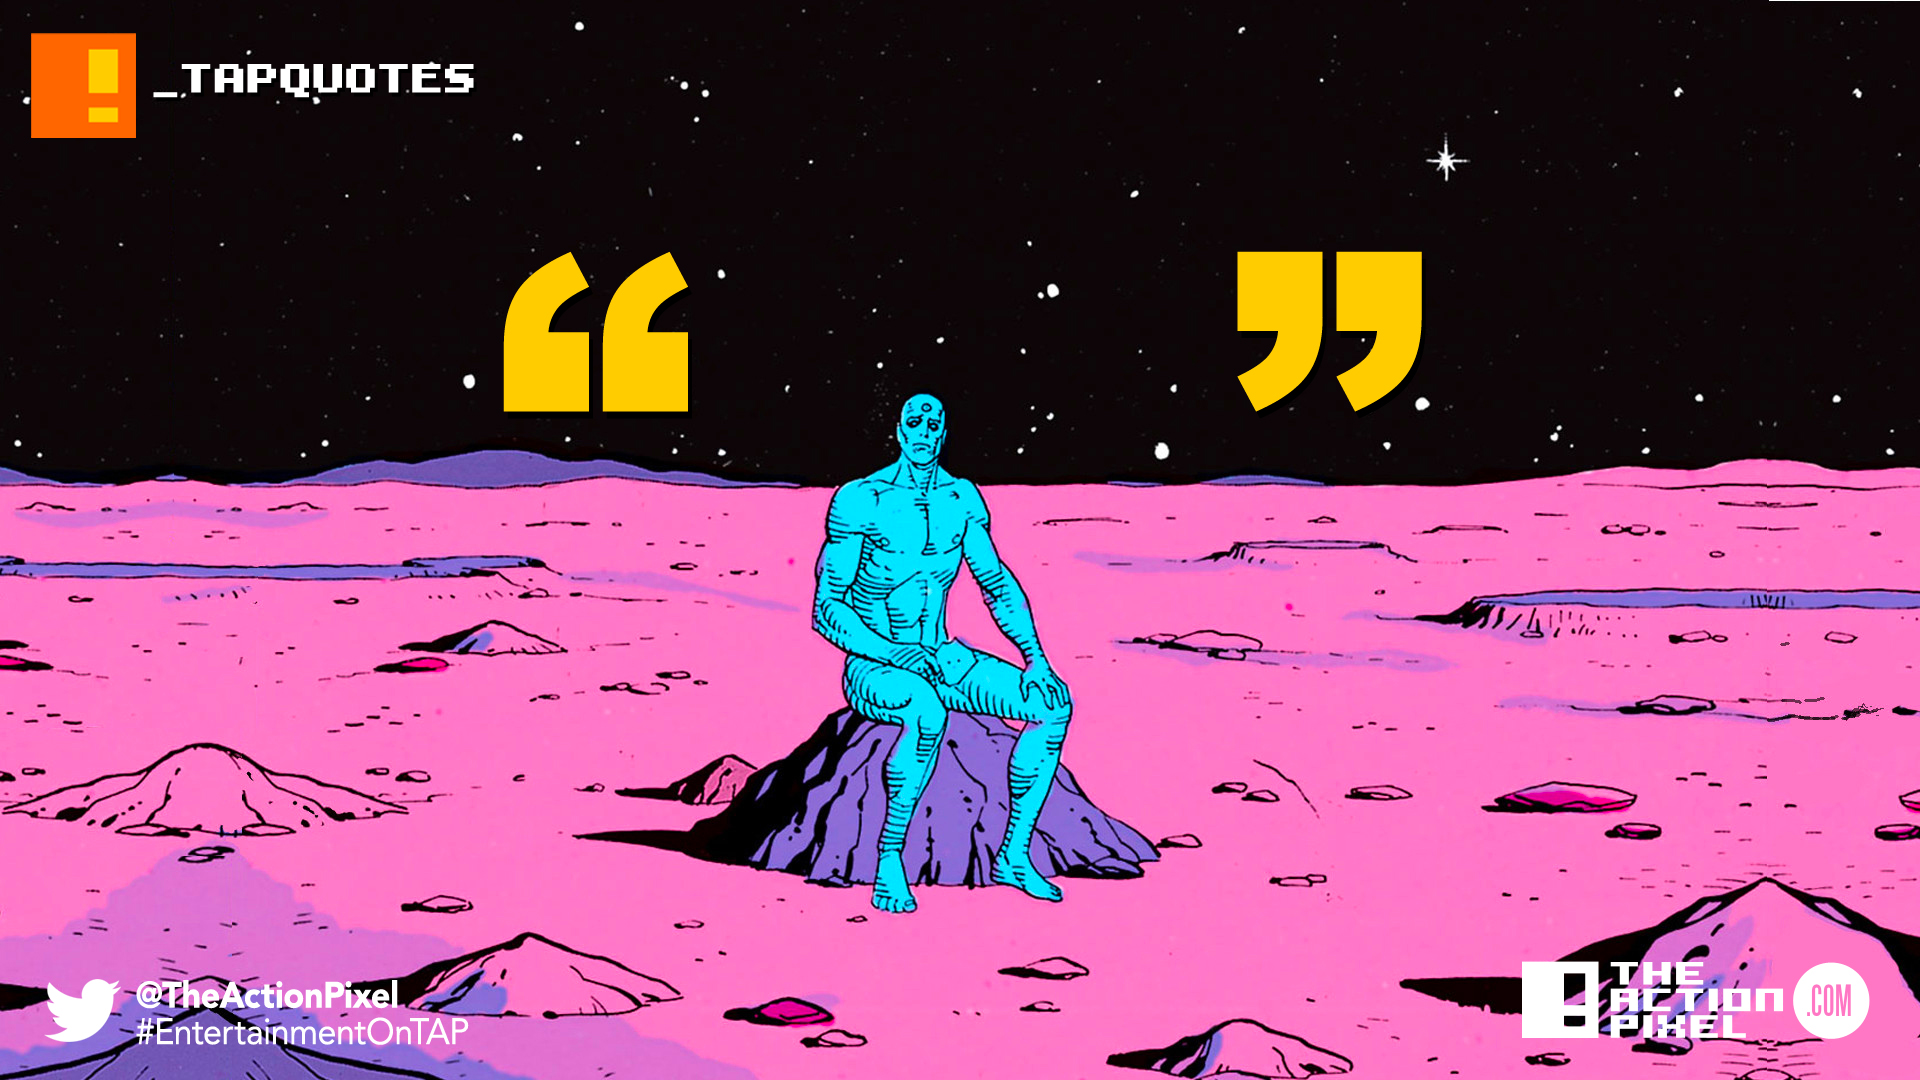 tap quotes, manhattan, doctor manhattan, quotes, the action pixel, entertainment on tap,